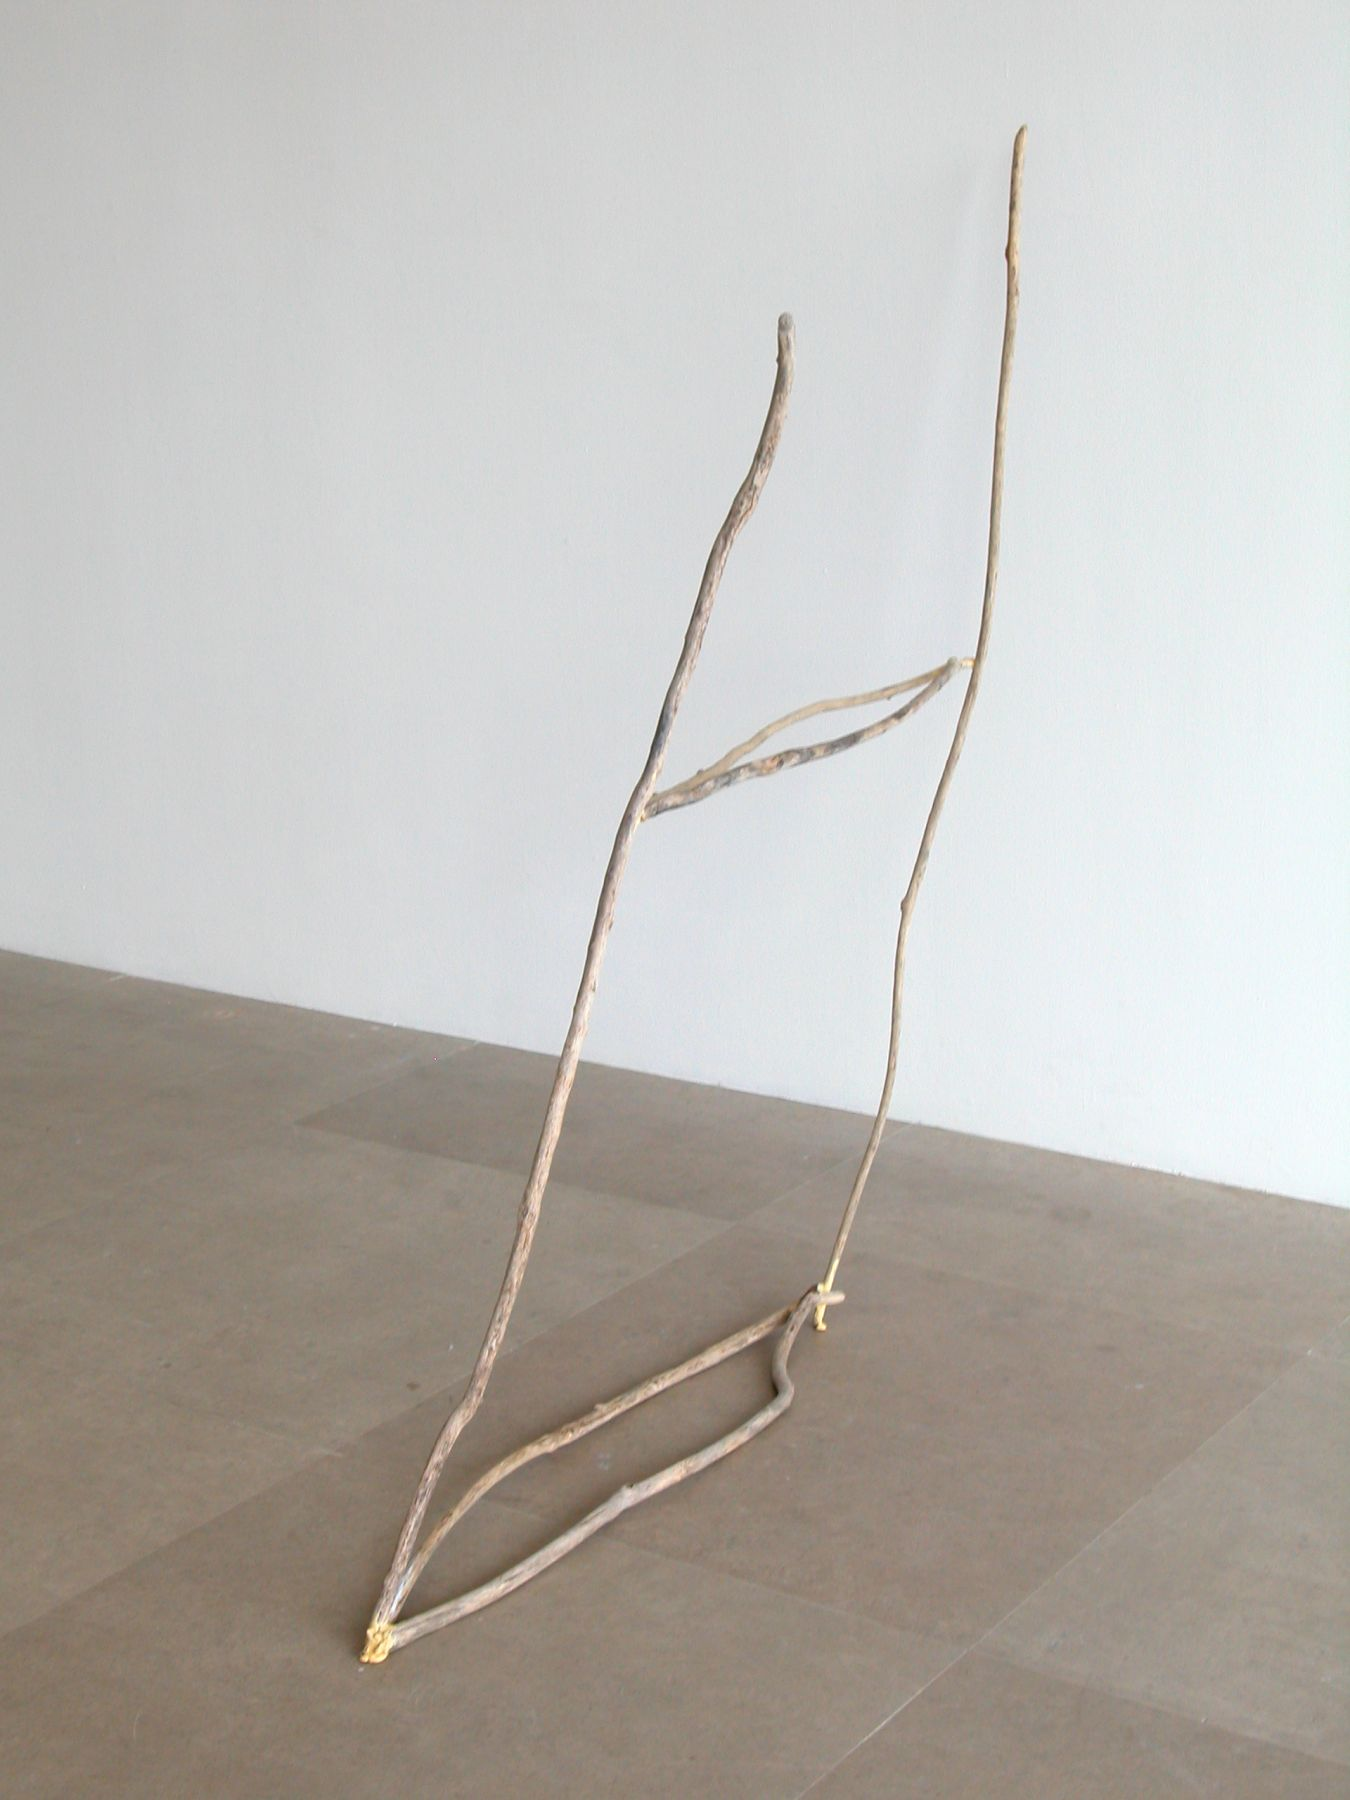 Held Made the Road, 2008, Sticks, 44 x 42 x 7 inches